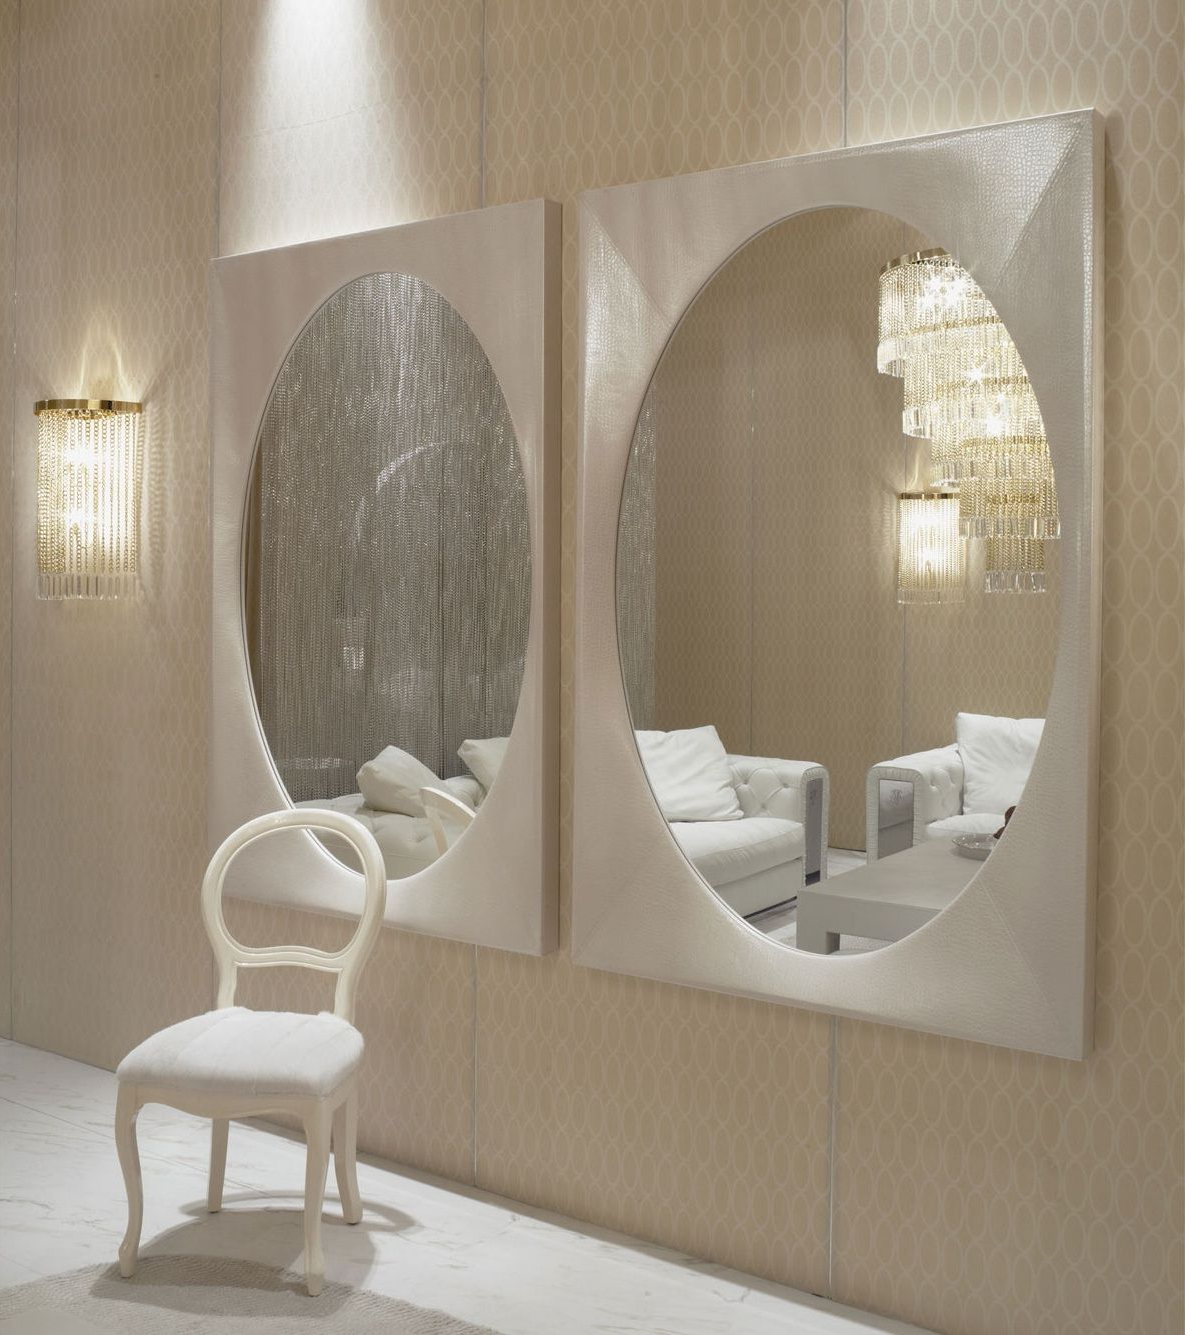 Famous Instyle Decor Wall Mirrors, Luxury Designer Wall Mirrors Regarding Contemporary Wall Mirrors (View 16 of 20)